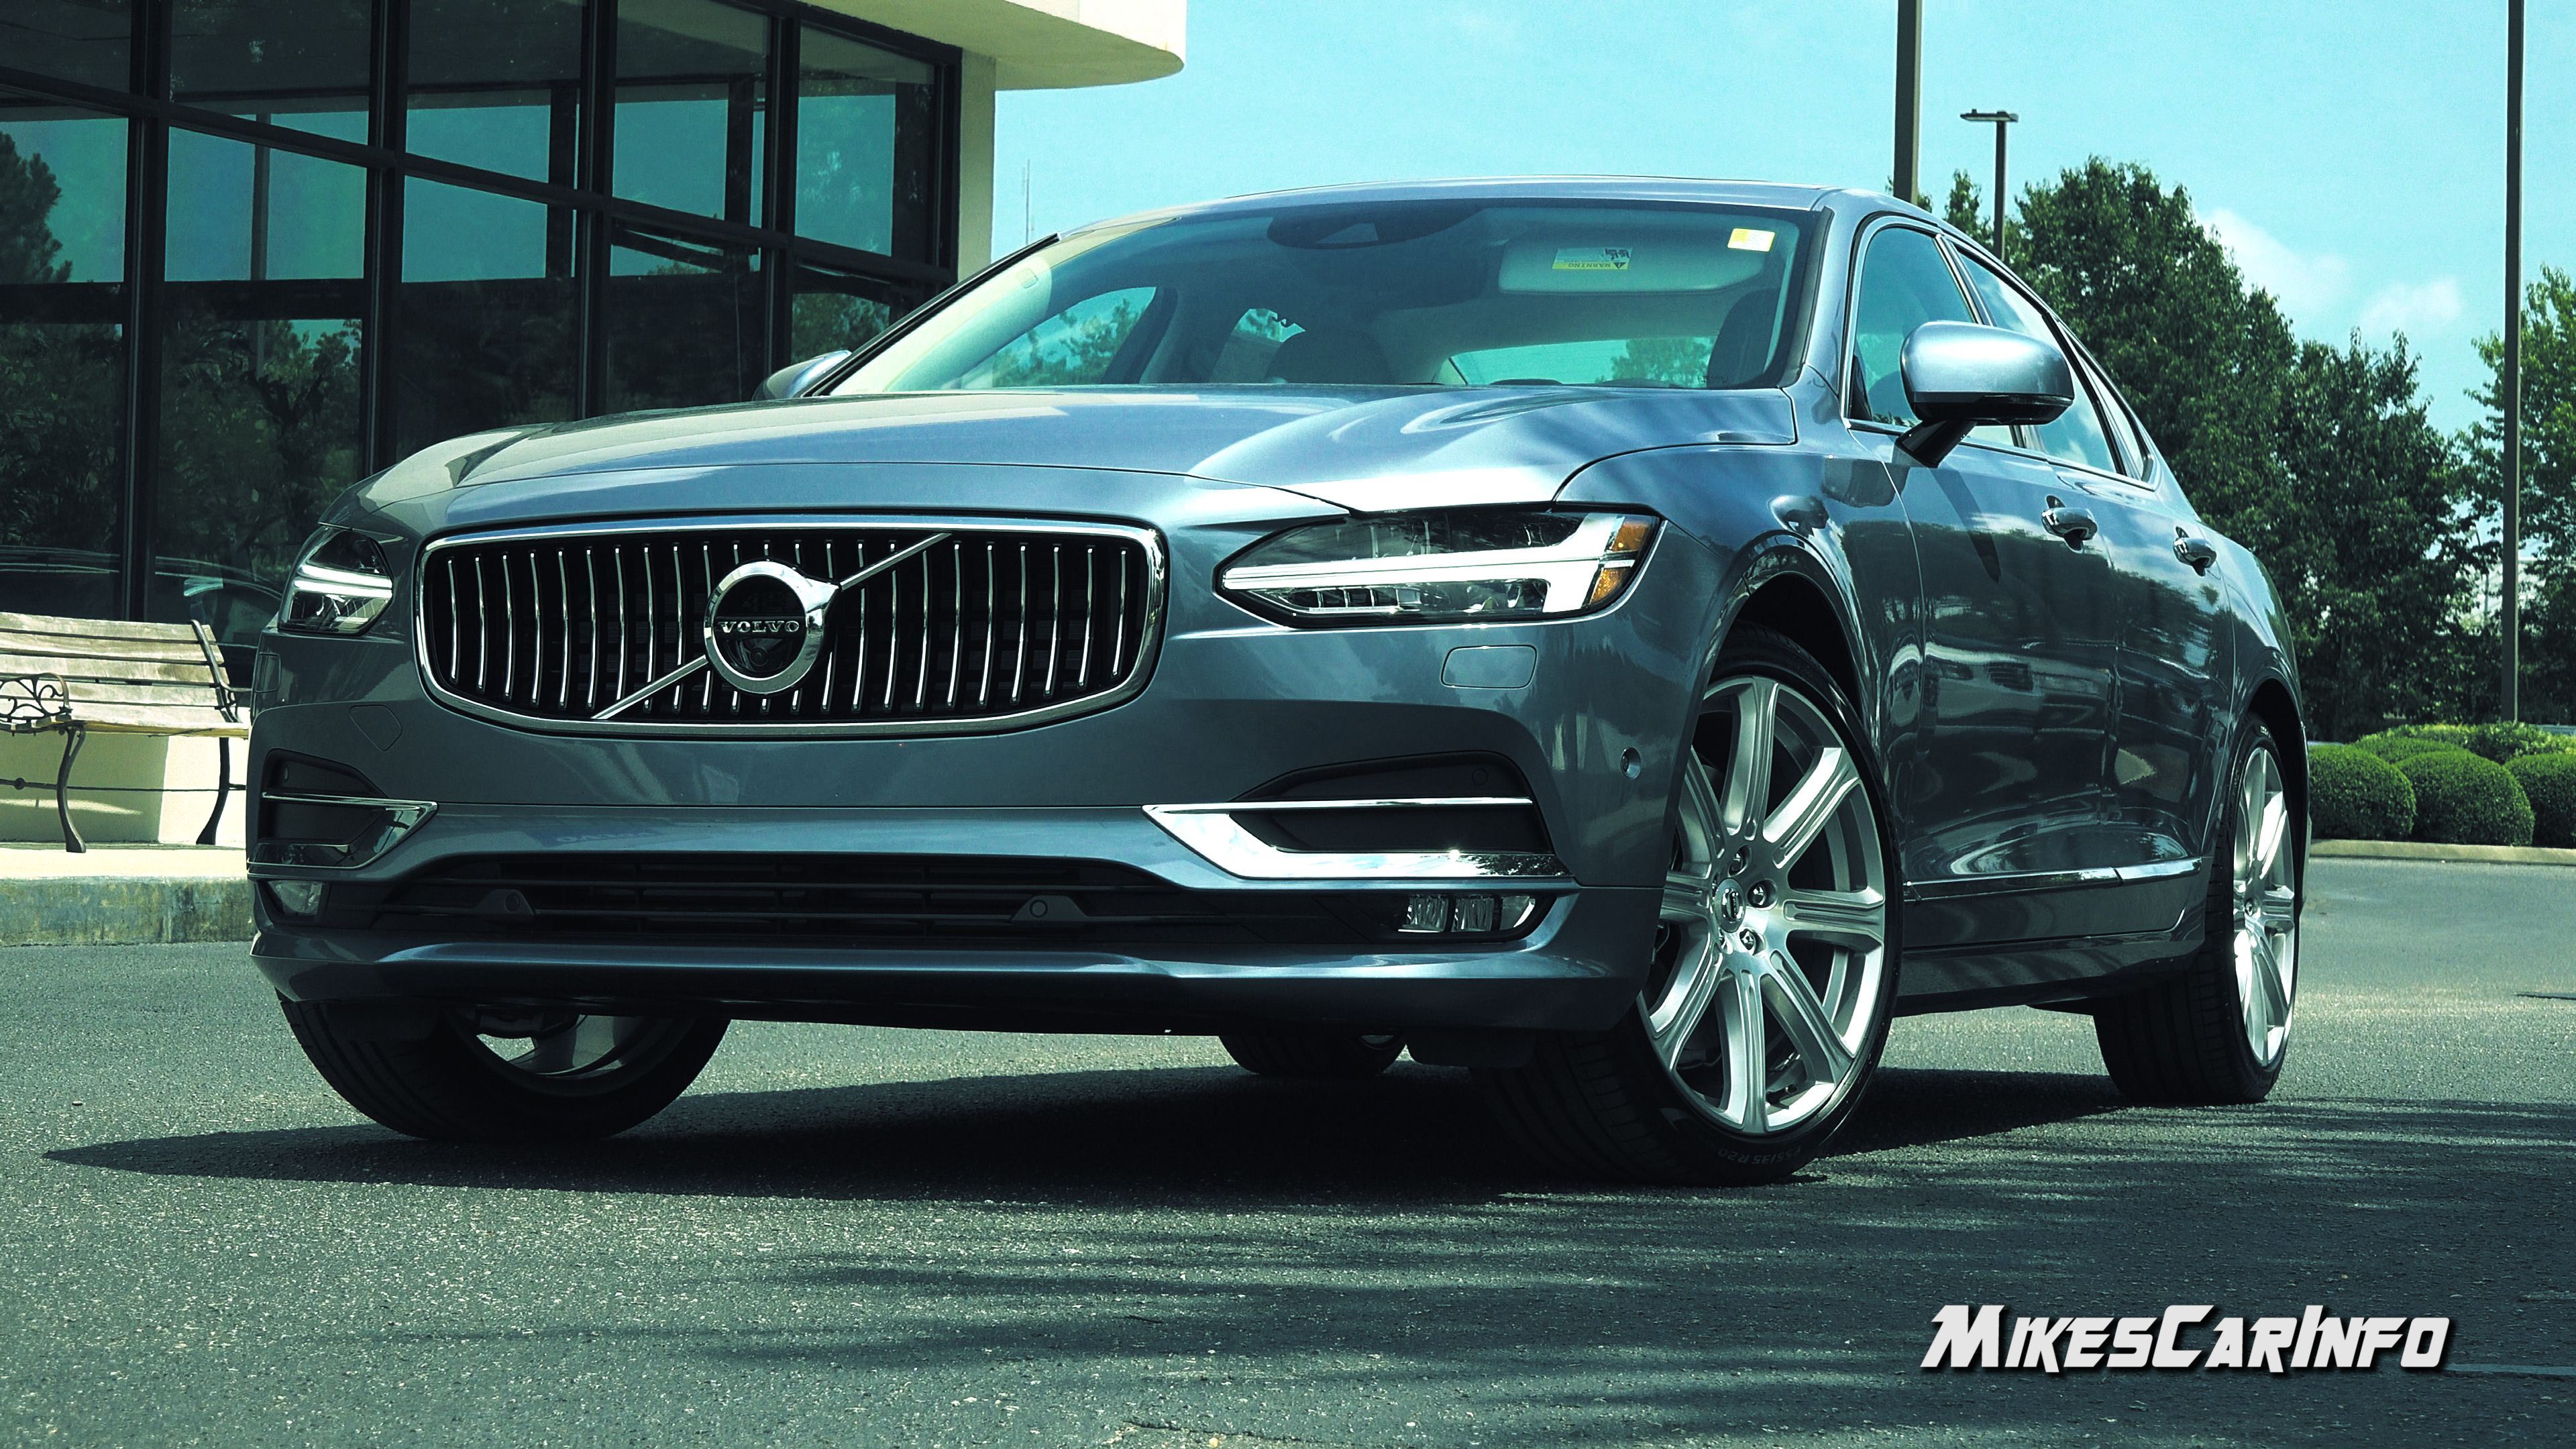 Such an awesome car! 2017 Volvo S90 Video coming soon